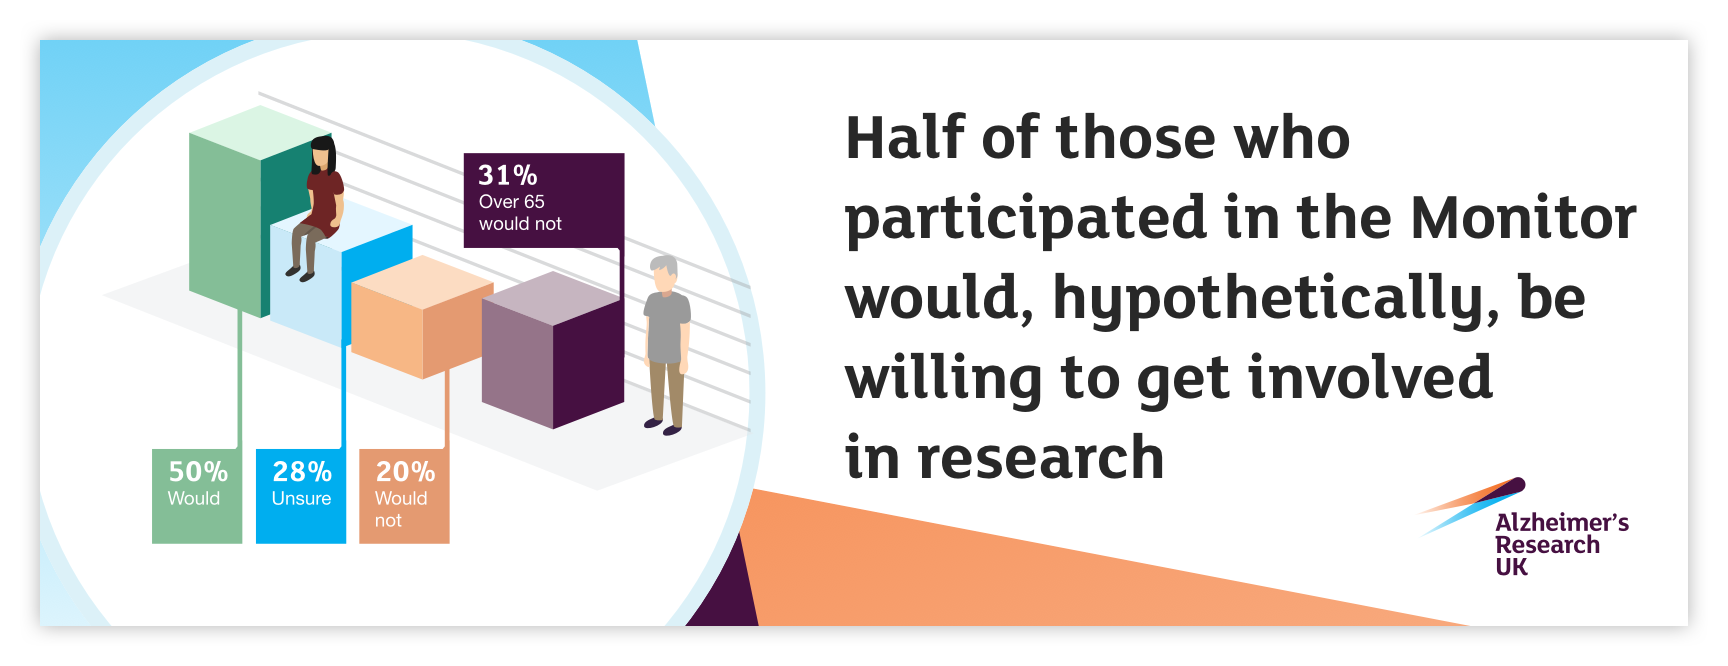 Half of those who participated in the Monitor would, hypothetically, be willing to be involved in research